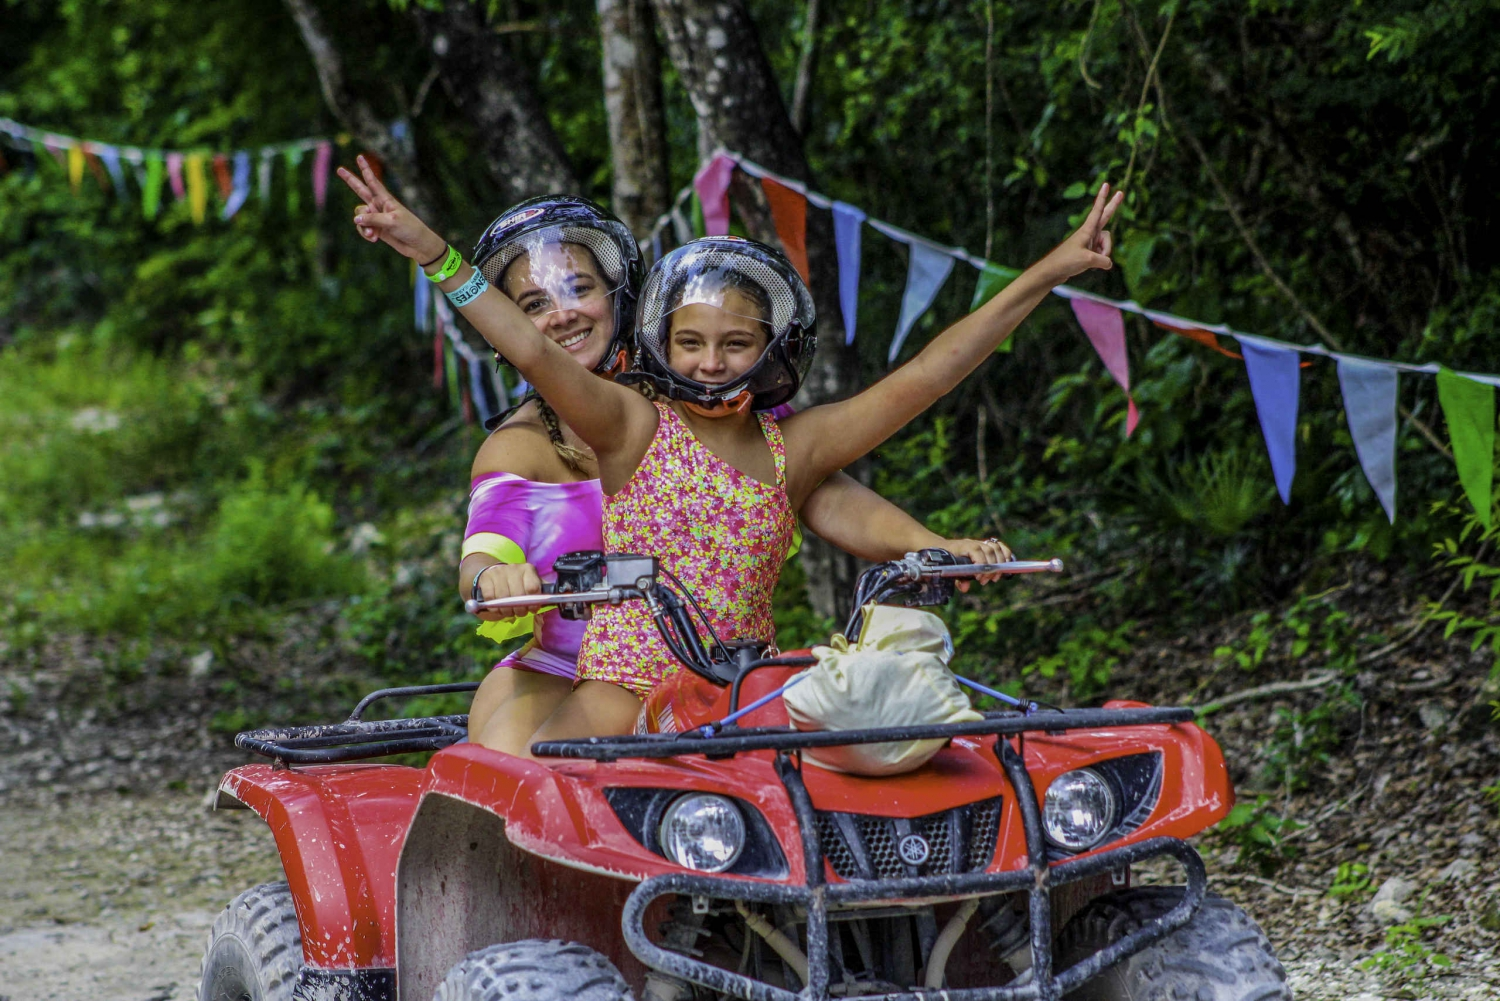 ATV & Cenote Cave Exploration Tour with Transfers